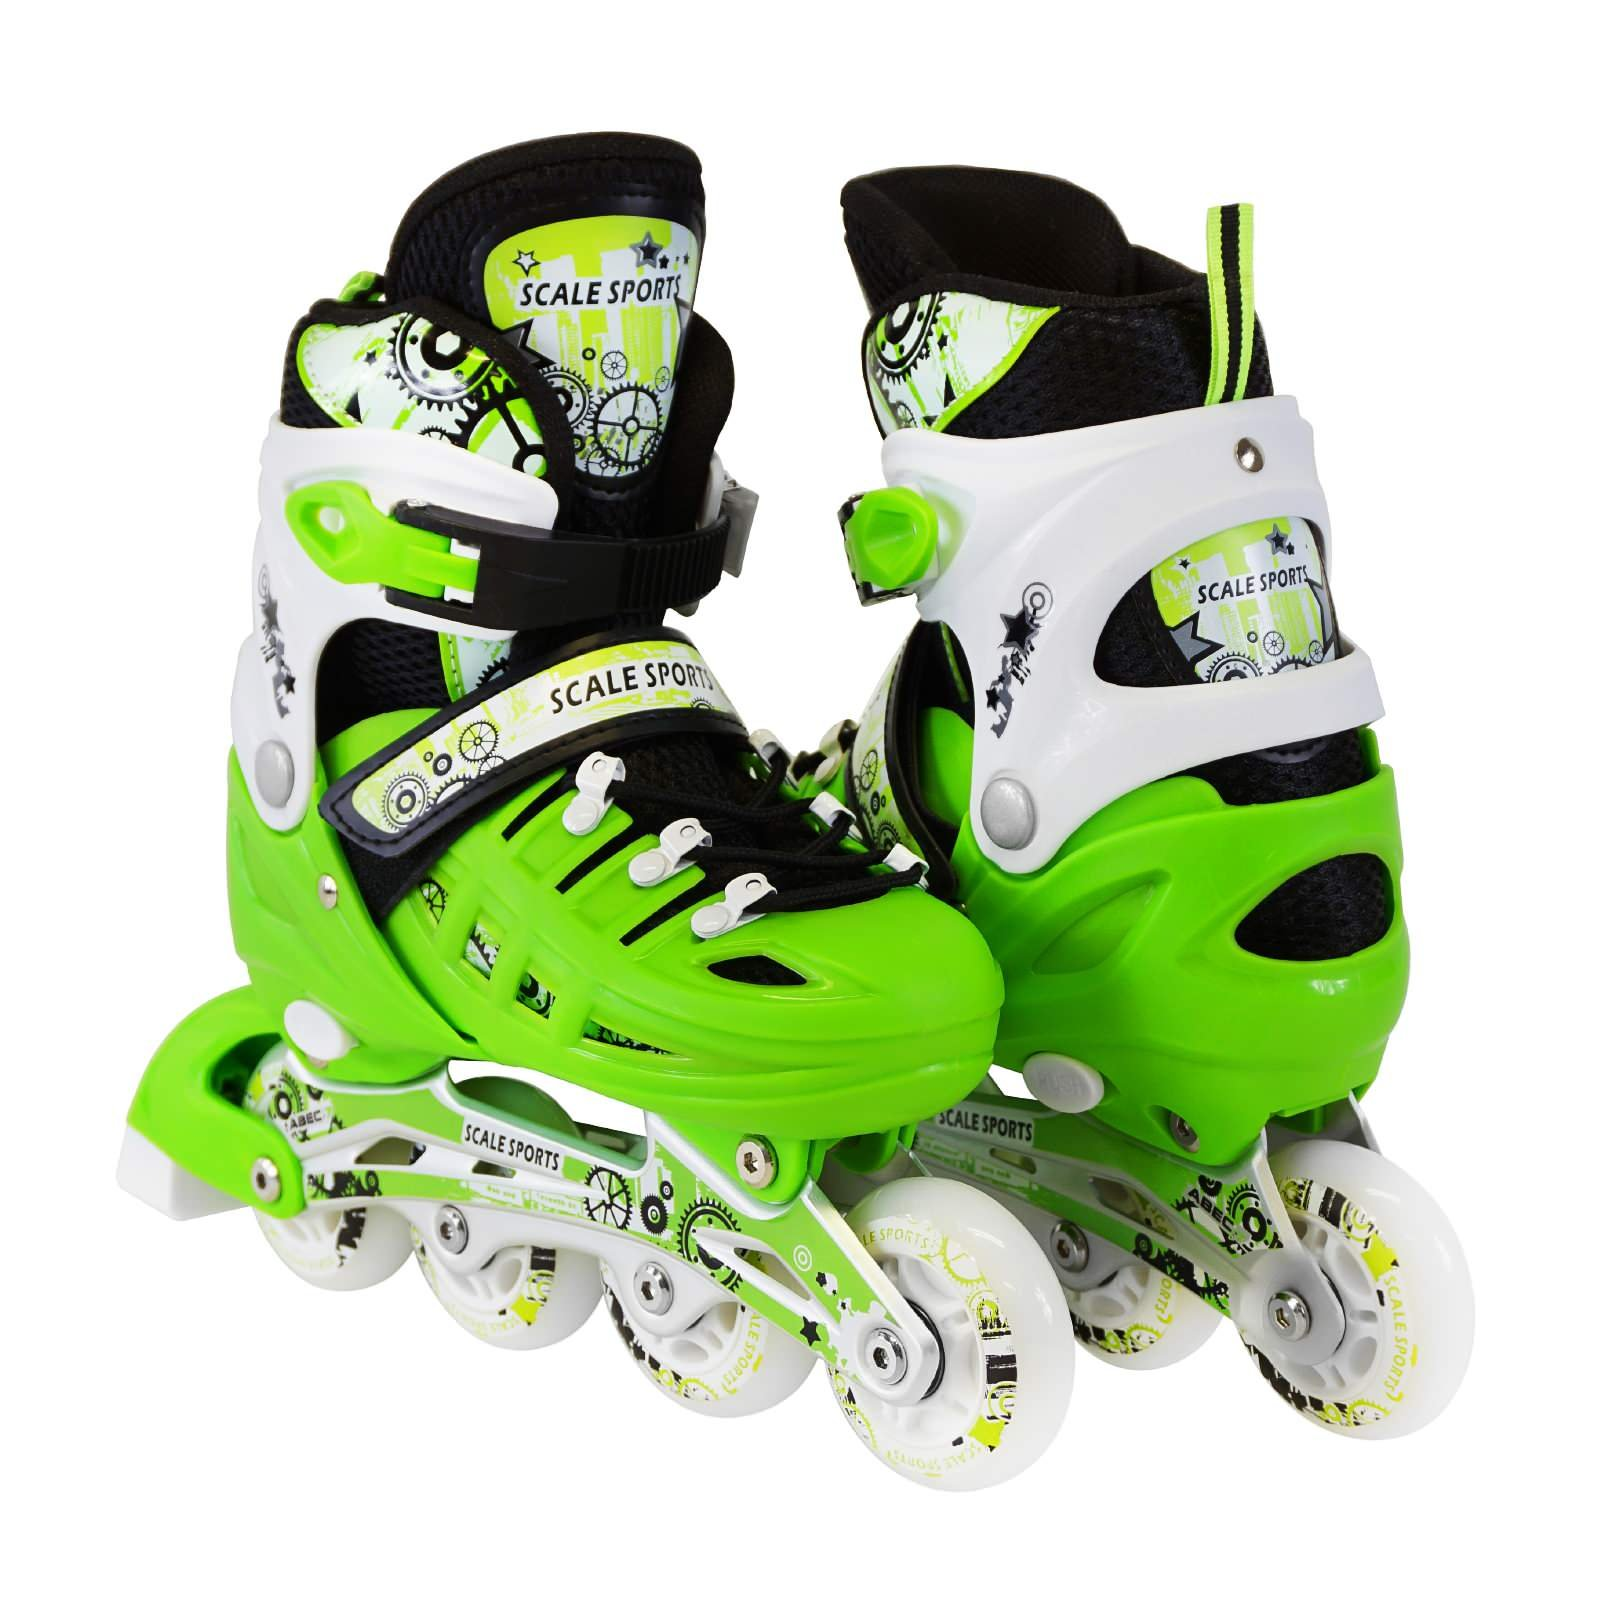 Kids Adjustable Inline Roller Blade Skates Scale Sports Green Medium Sizes Safe Durable Outdoor Featuring Illuminating Front Wheels 905